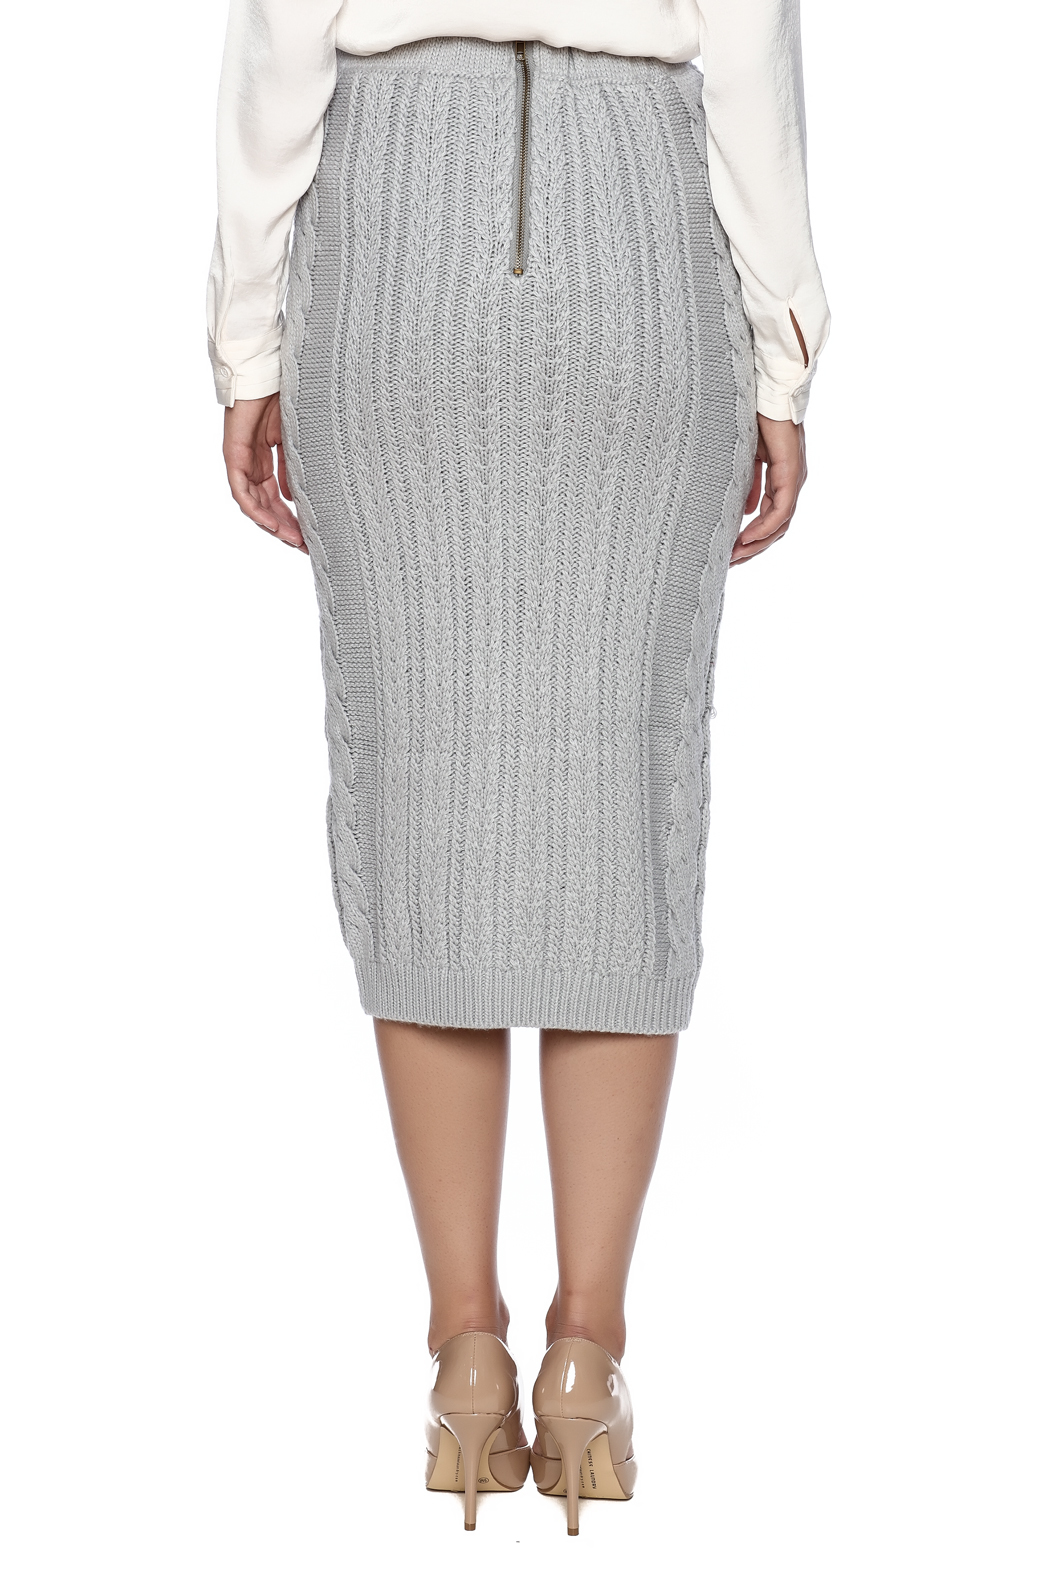 c44292dd4e53 essue Midi Sweater Skirt from Miami by Leah & Pearl — Shoptiques